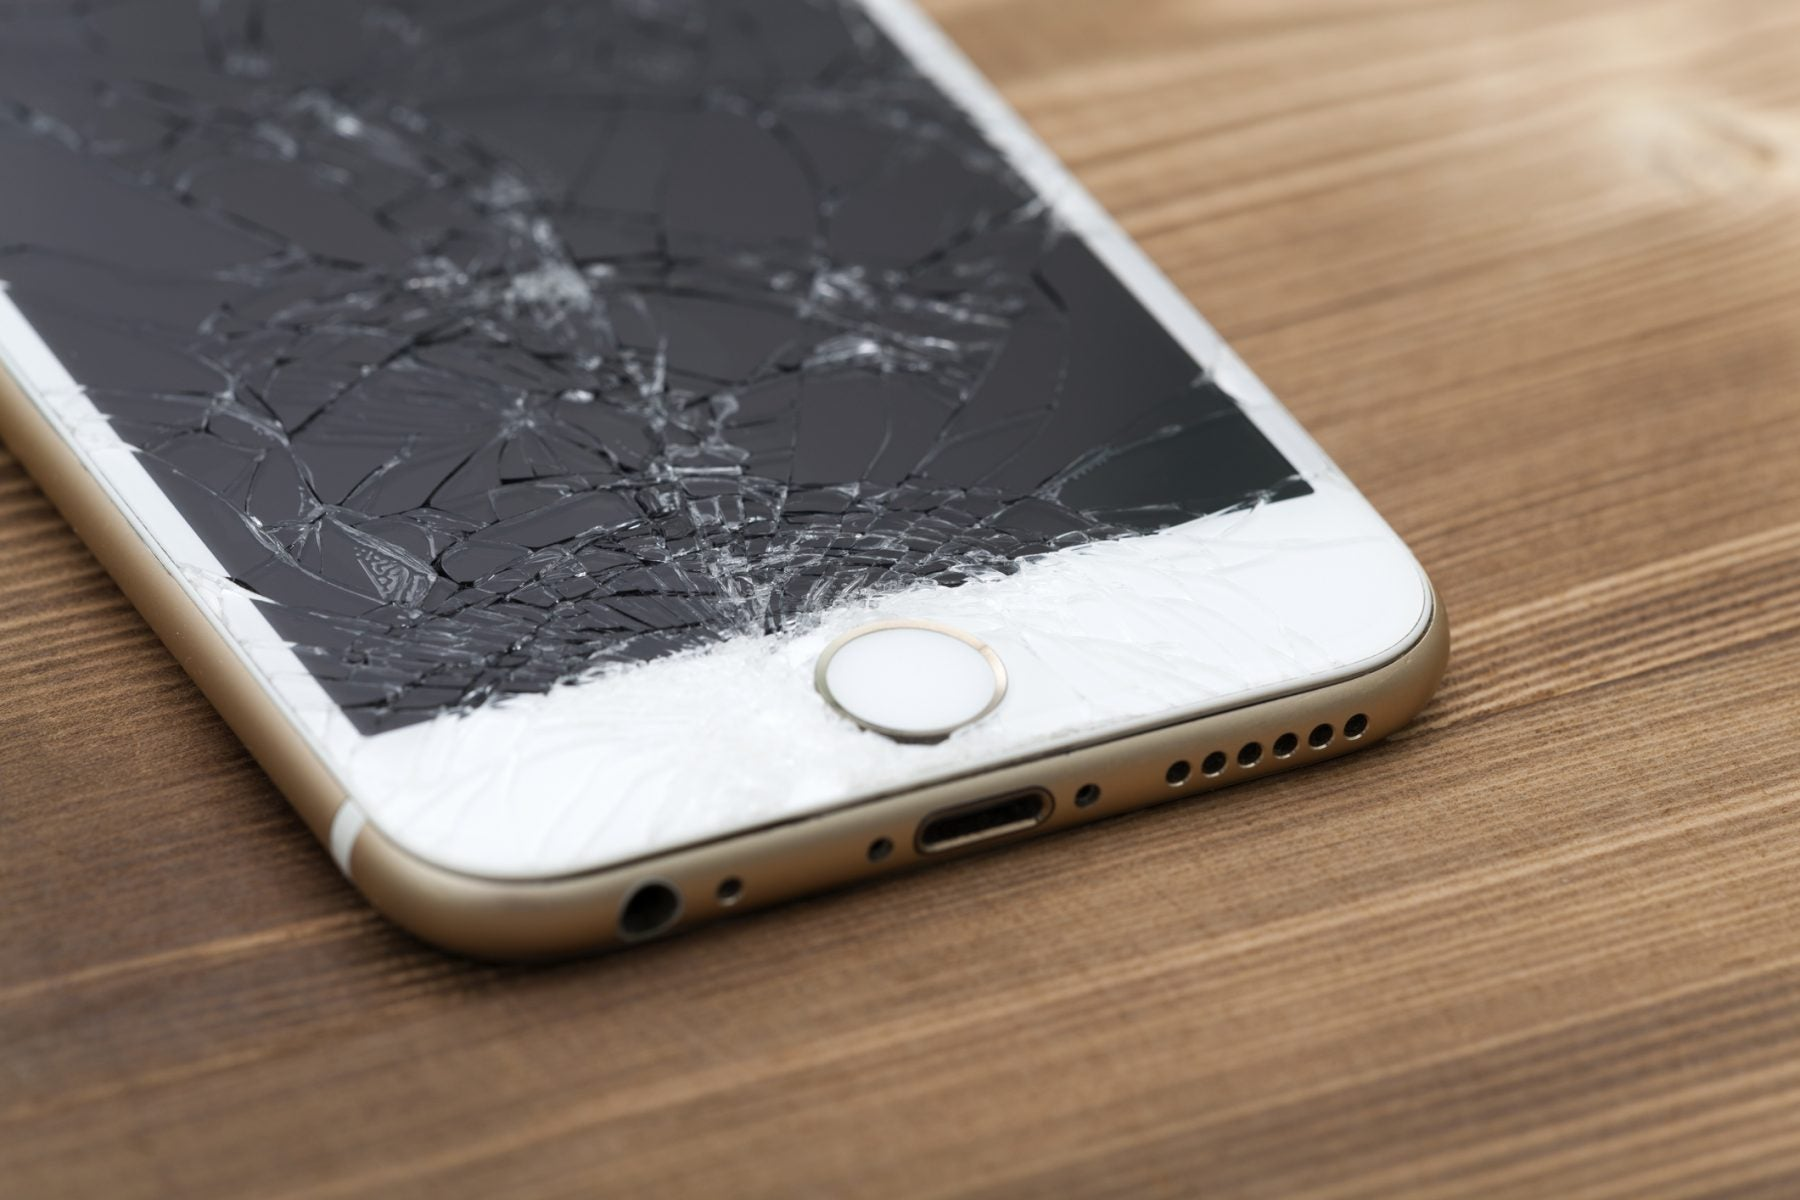 Running a Business is Stressful Enough. Don't Stress About Your Phone Thanks to Cell Phone Insurance With Chase Ink Business Preferred